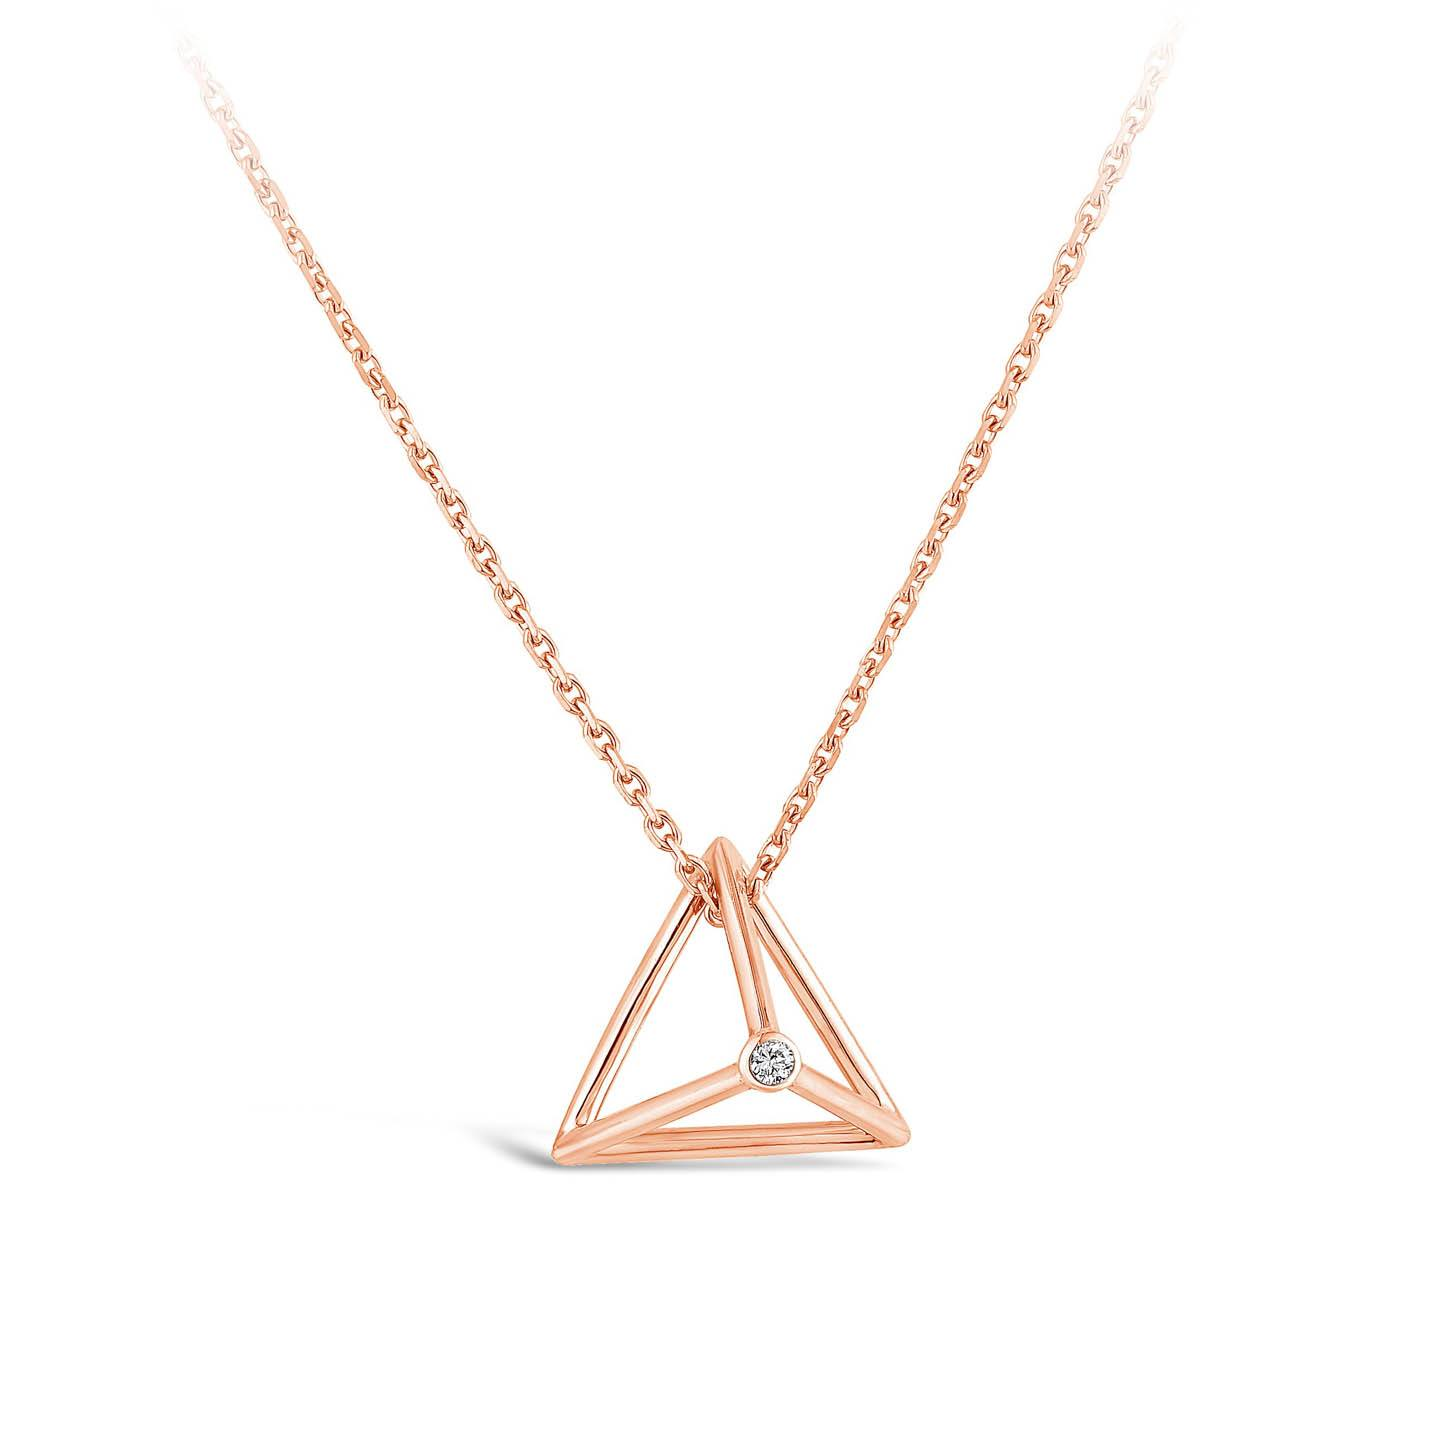 Collier Pyramide Et diamant or rose